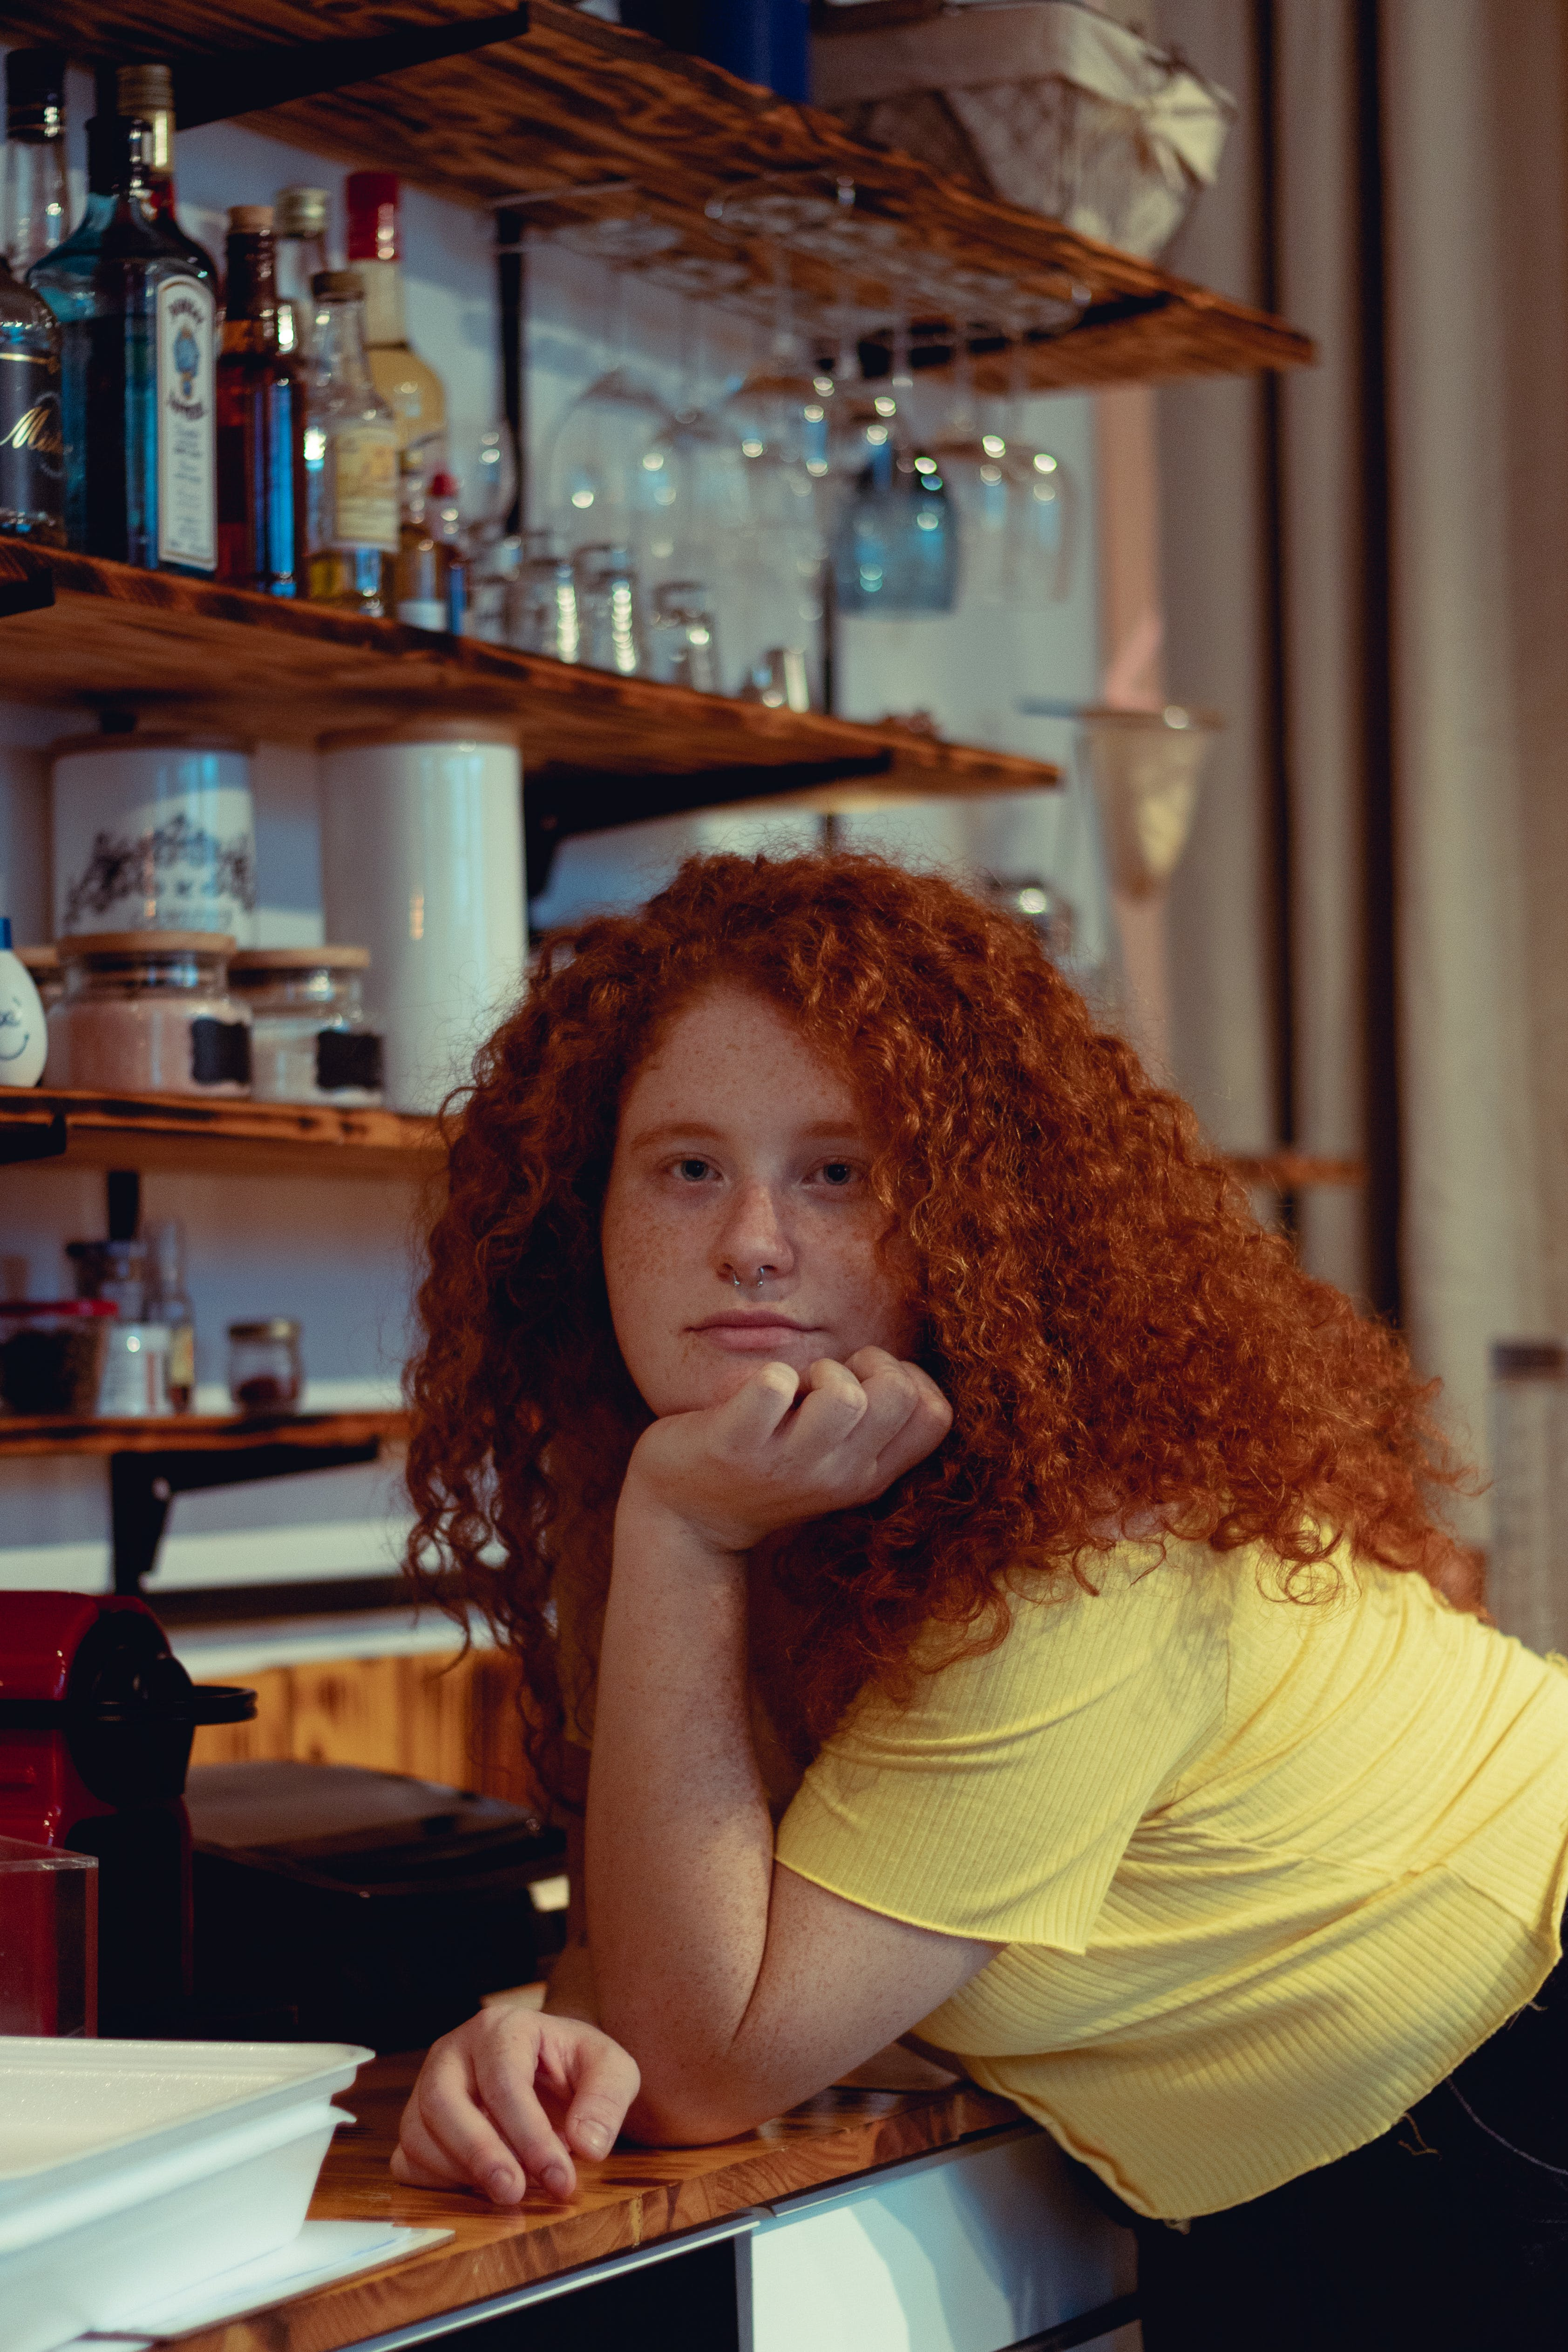 Curly Haired Woman Leaning On Bar Counter